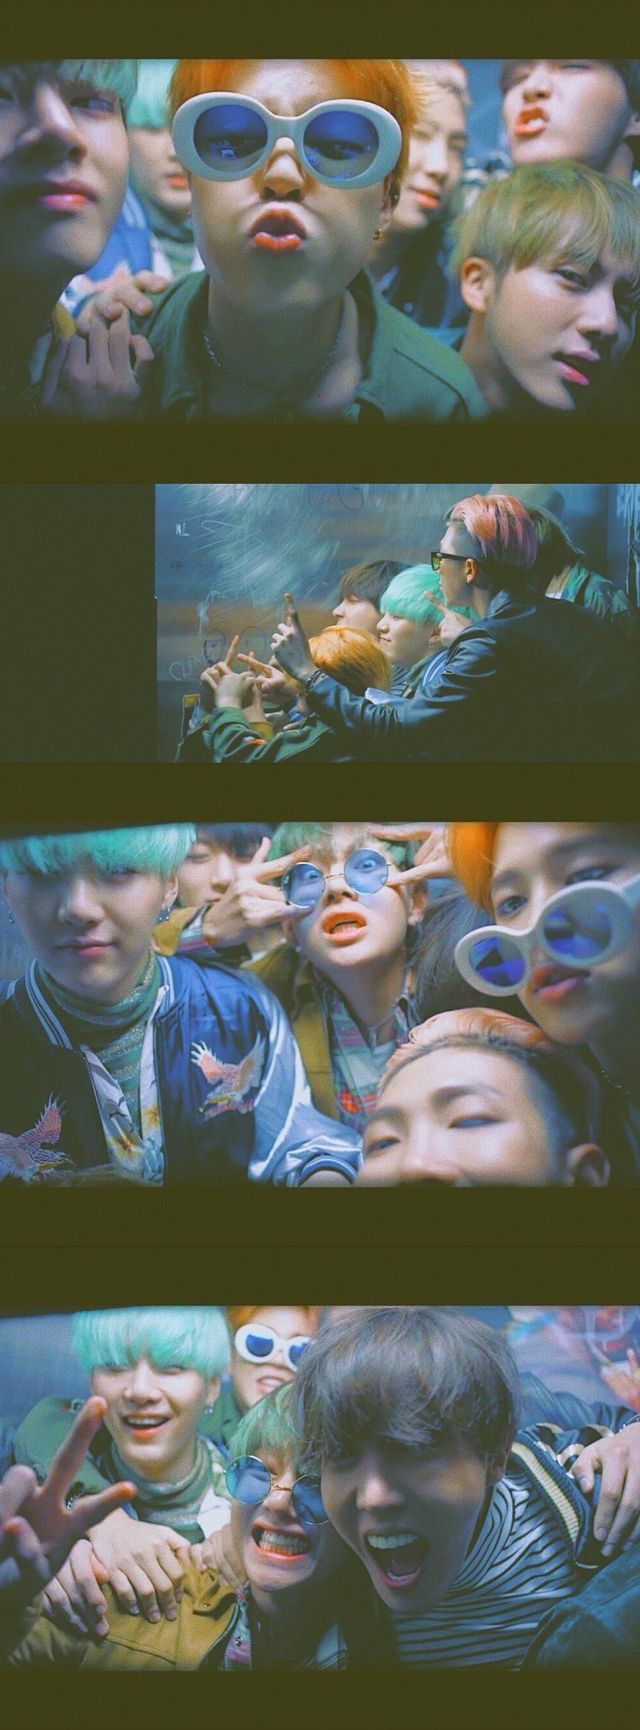 I miss Run era, again ive only been an Army for a year, but when u watch their MV's, u really feel like uve been an Army for a long ass time, i love Bangtan❤